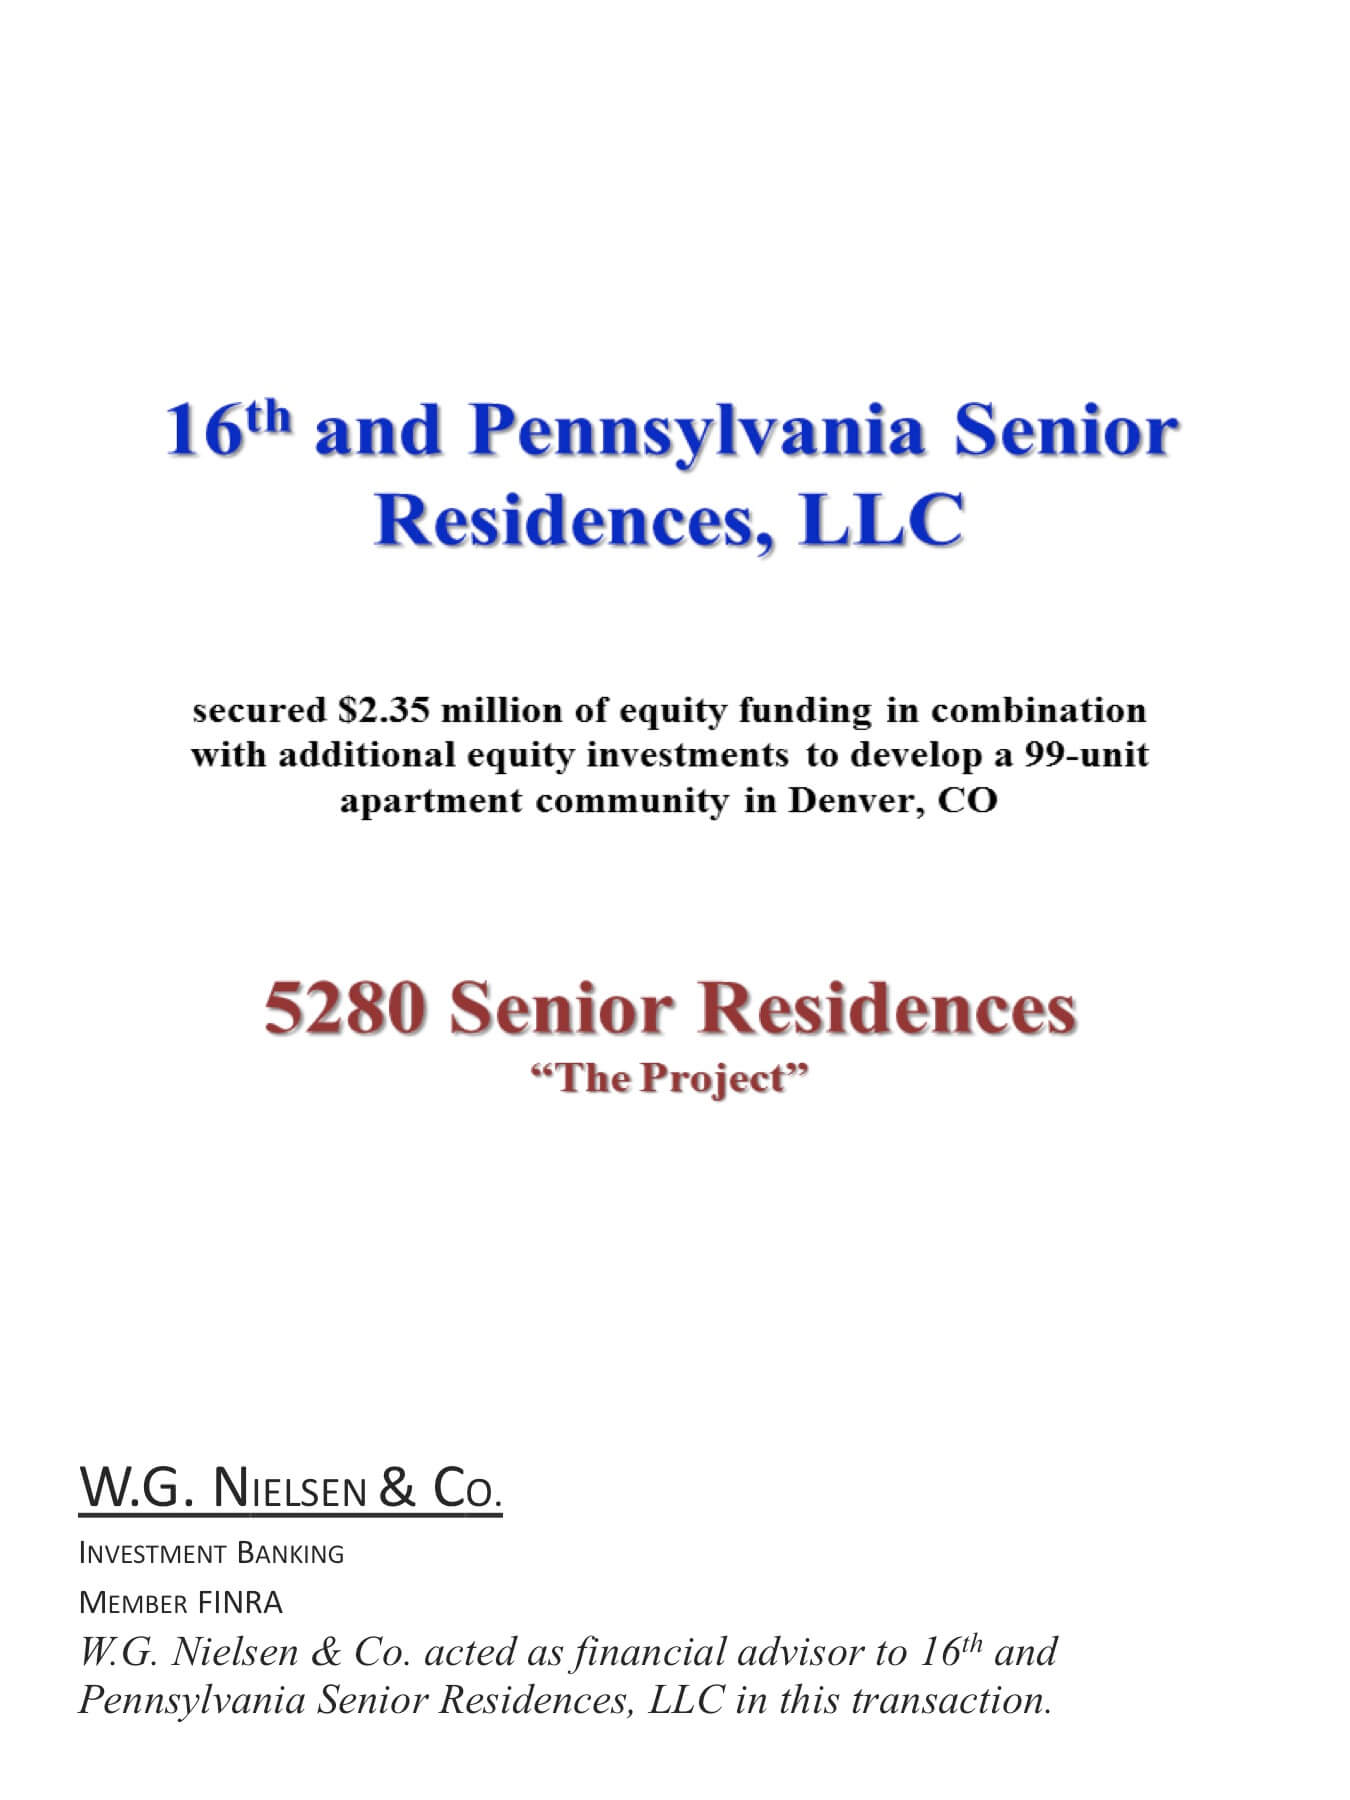 16th and pennsylvania senior residences investment banking transaction